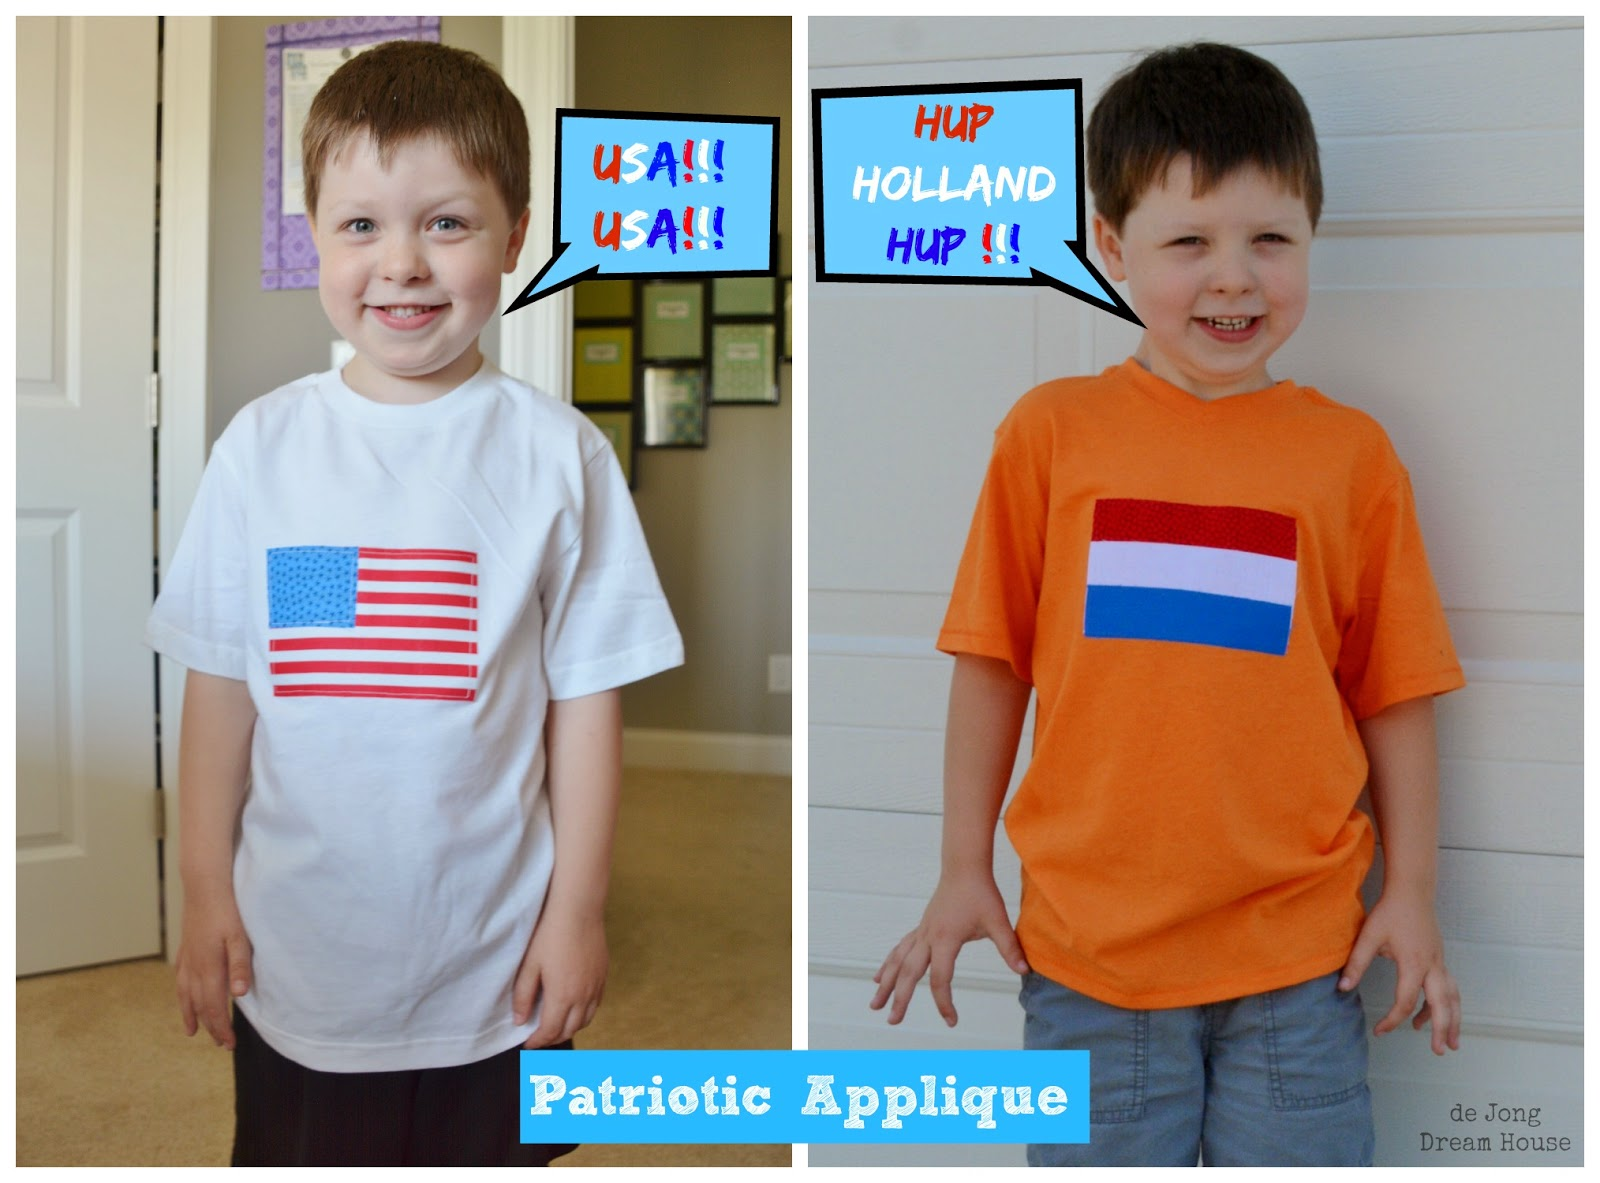 Patriotic applique shirts by de Jong Dream House